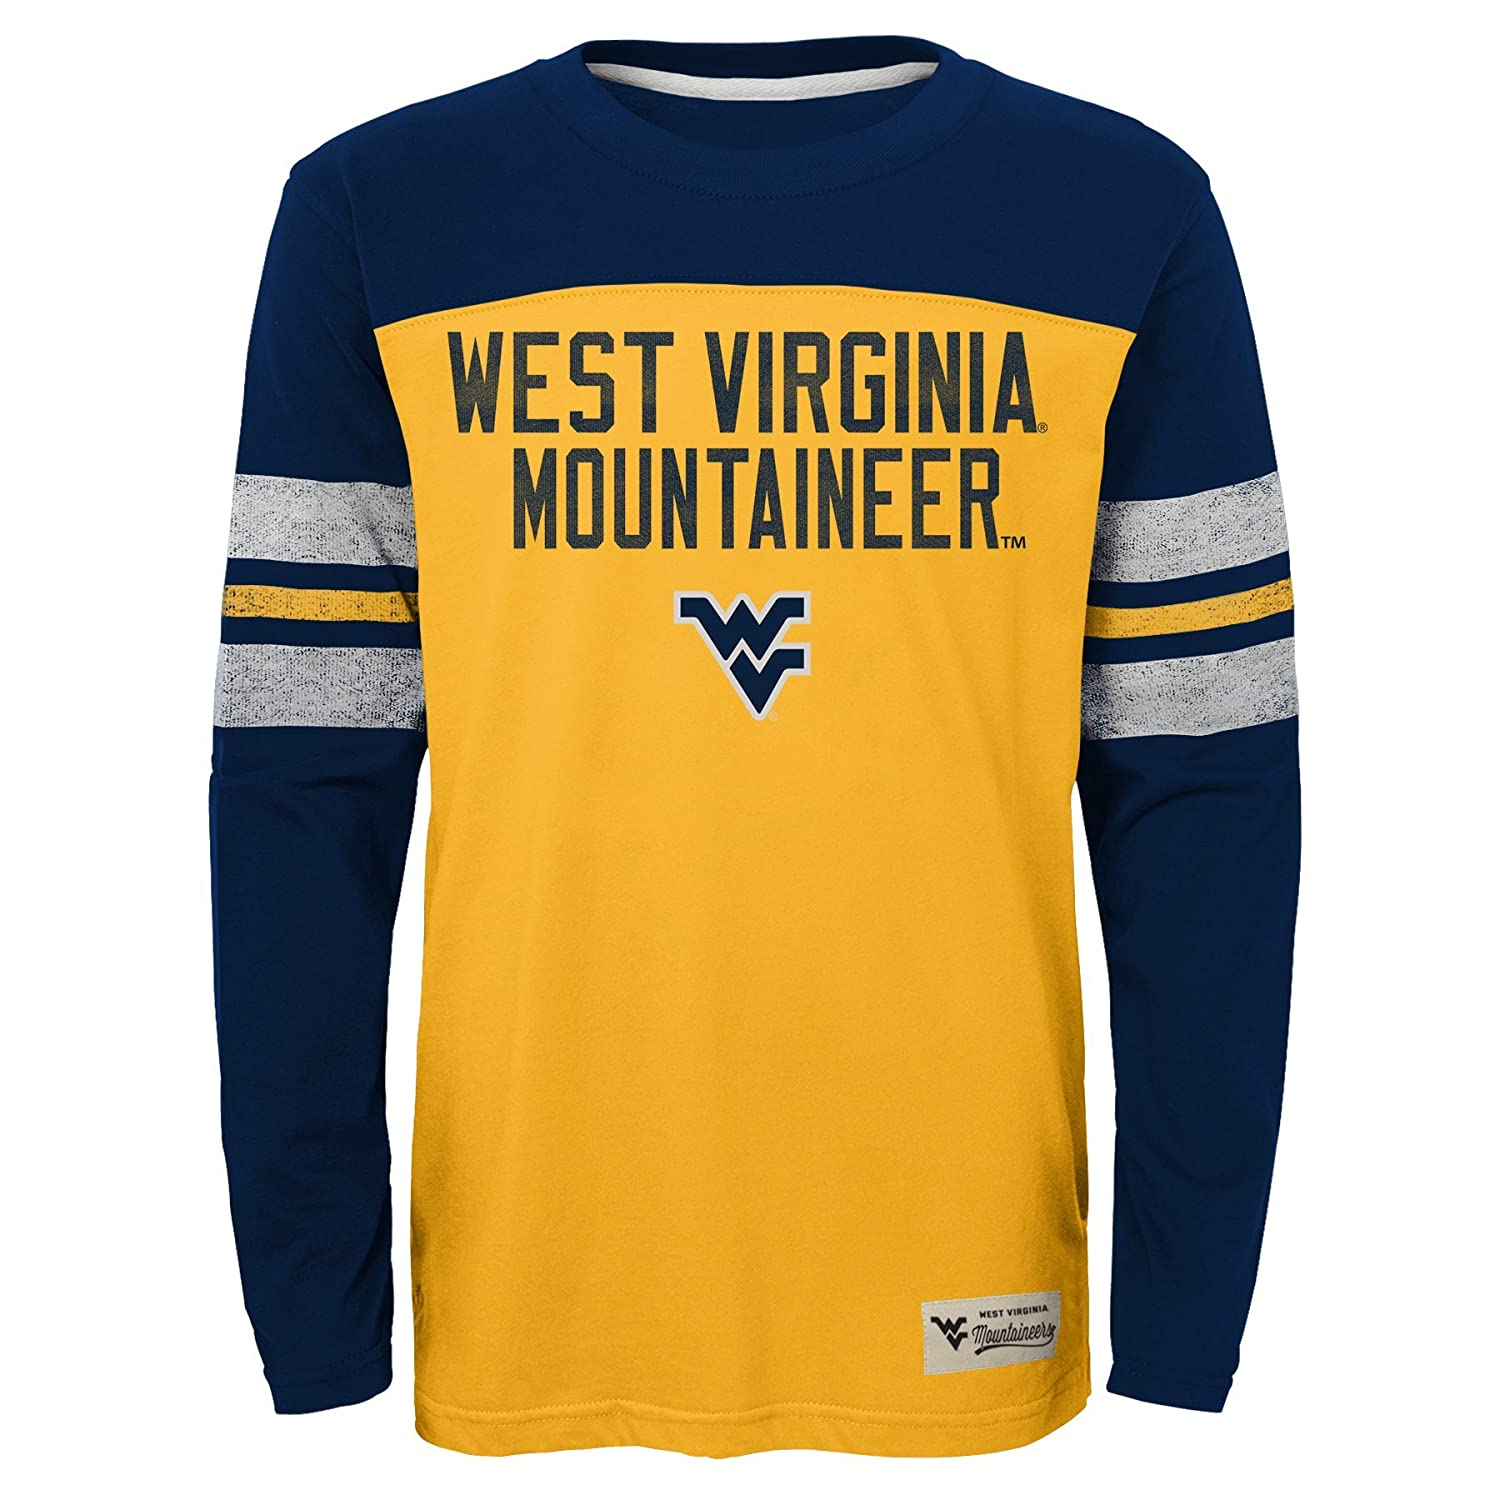 10-12 Youth Medium Gold NCAA by Outerstuff NCAA West Virginia Mountaineers Kids /& Youth Boys Legacy Tee Long Sleeve Crew